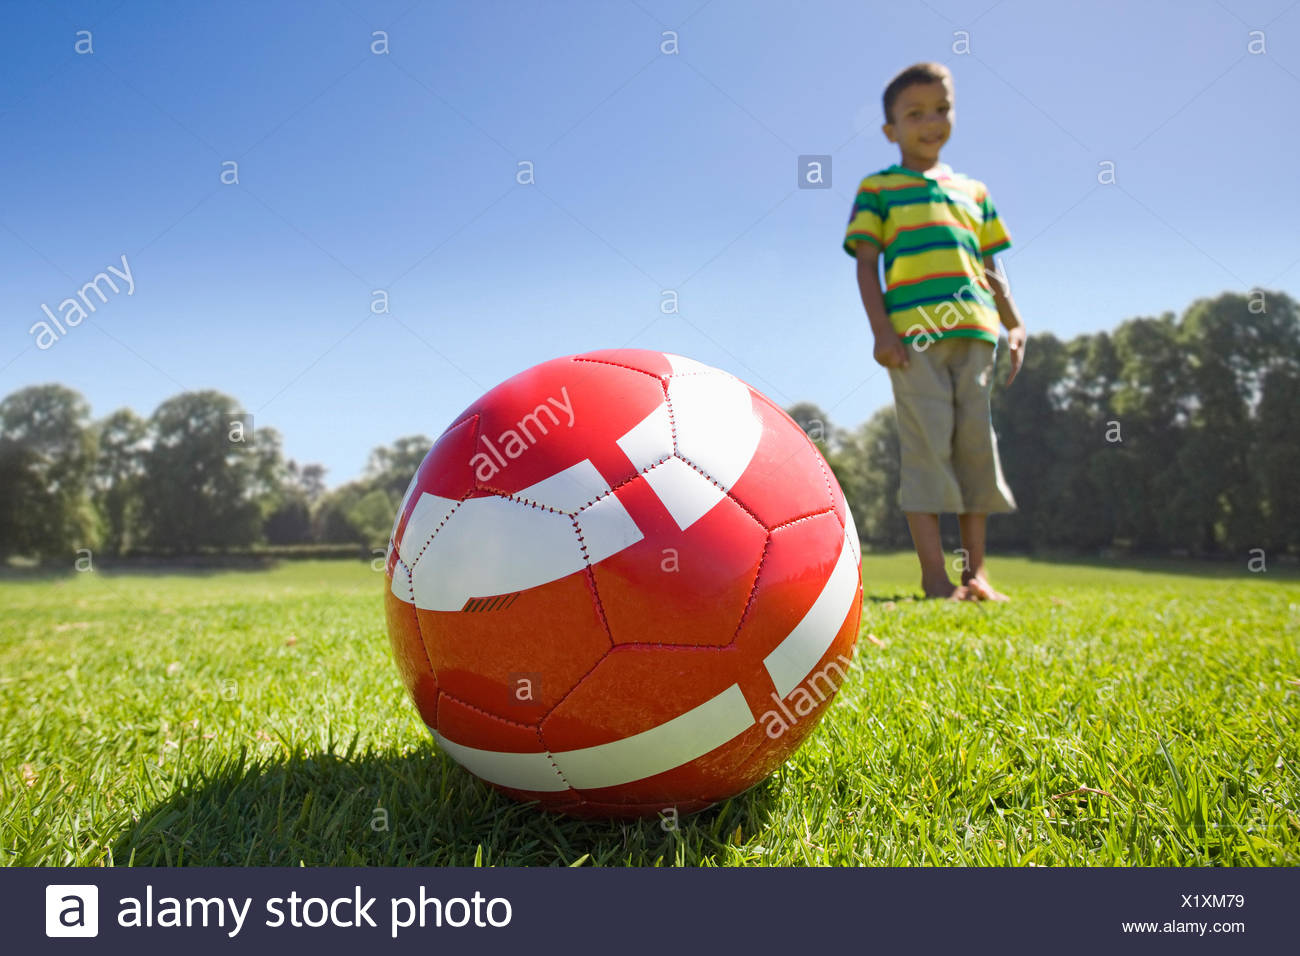 Boy in park with football Photo Stock